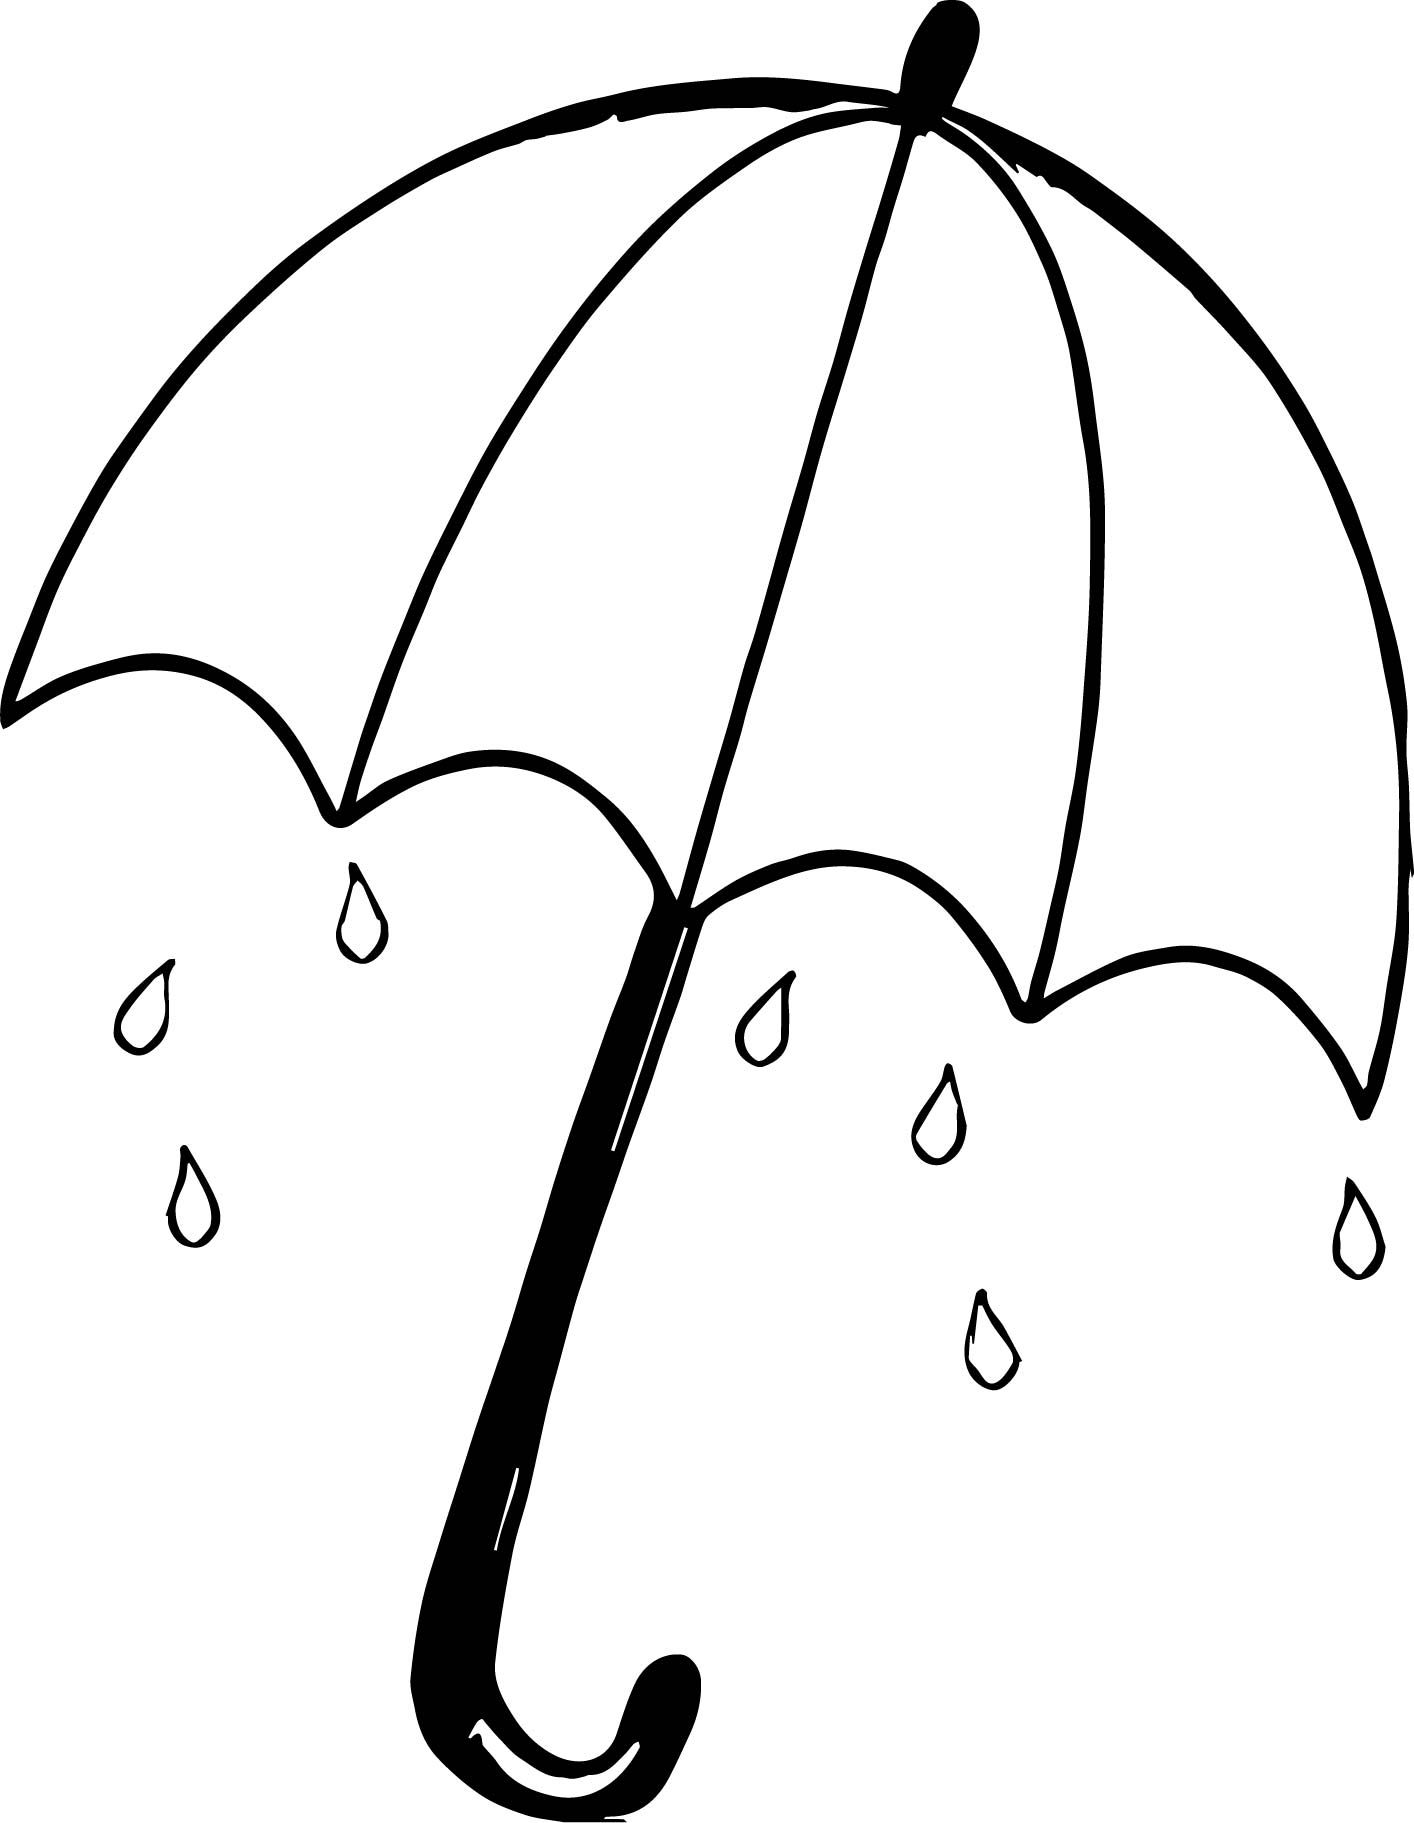 Nice April Shower Umbrella Coloring Page Umbrella Coloring Page Coloring Pages Coloring Pages For Kids